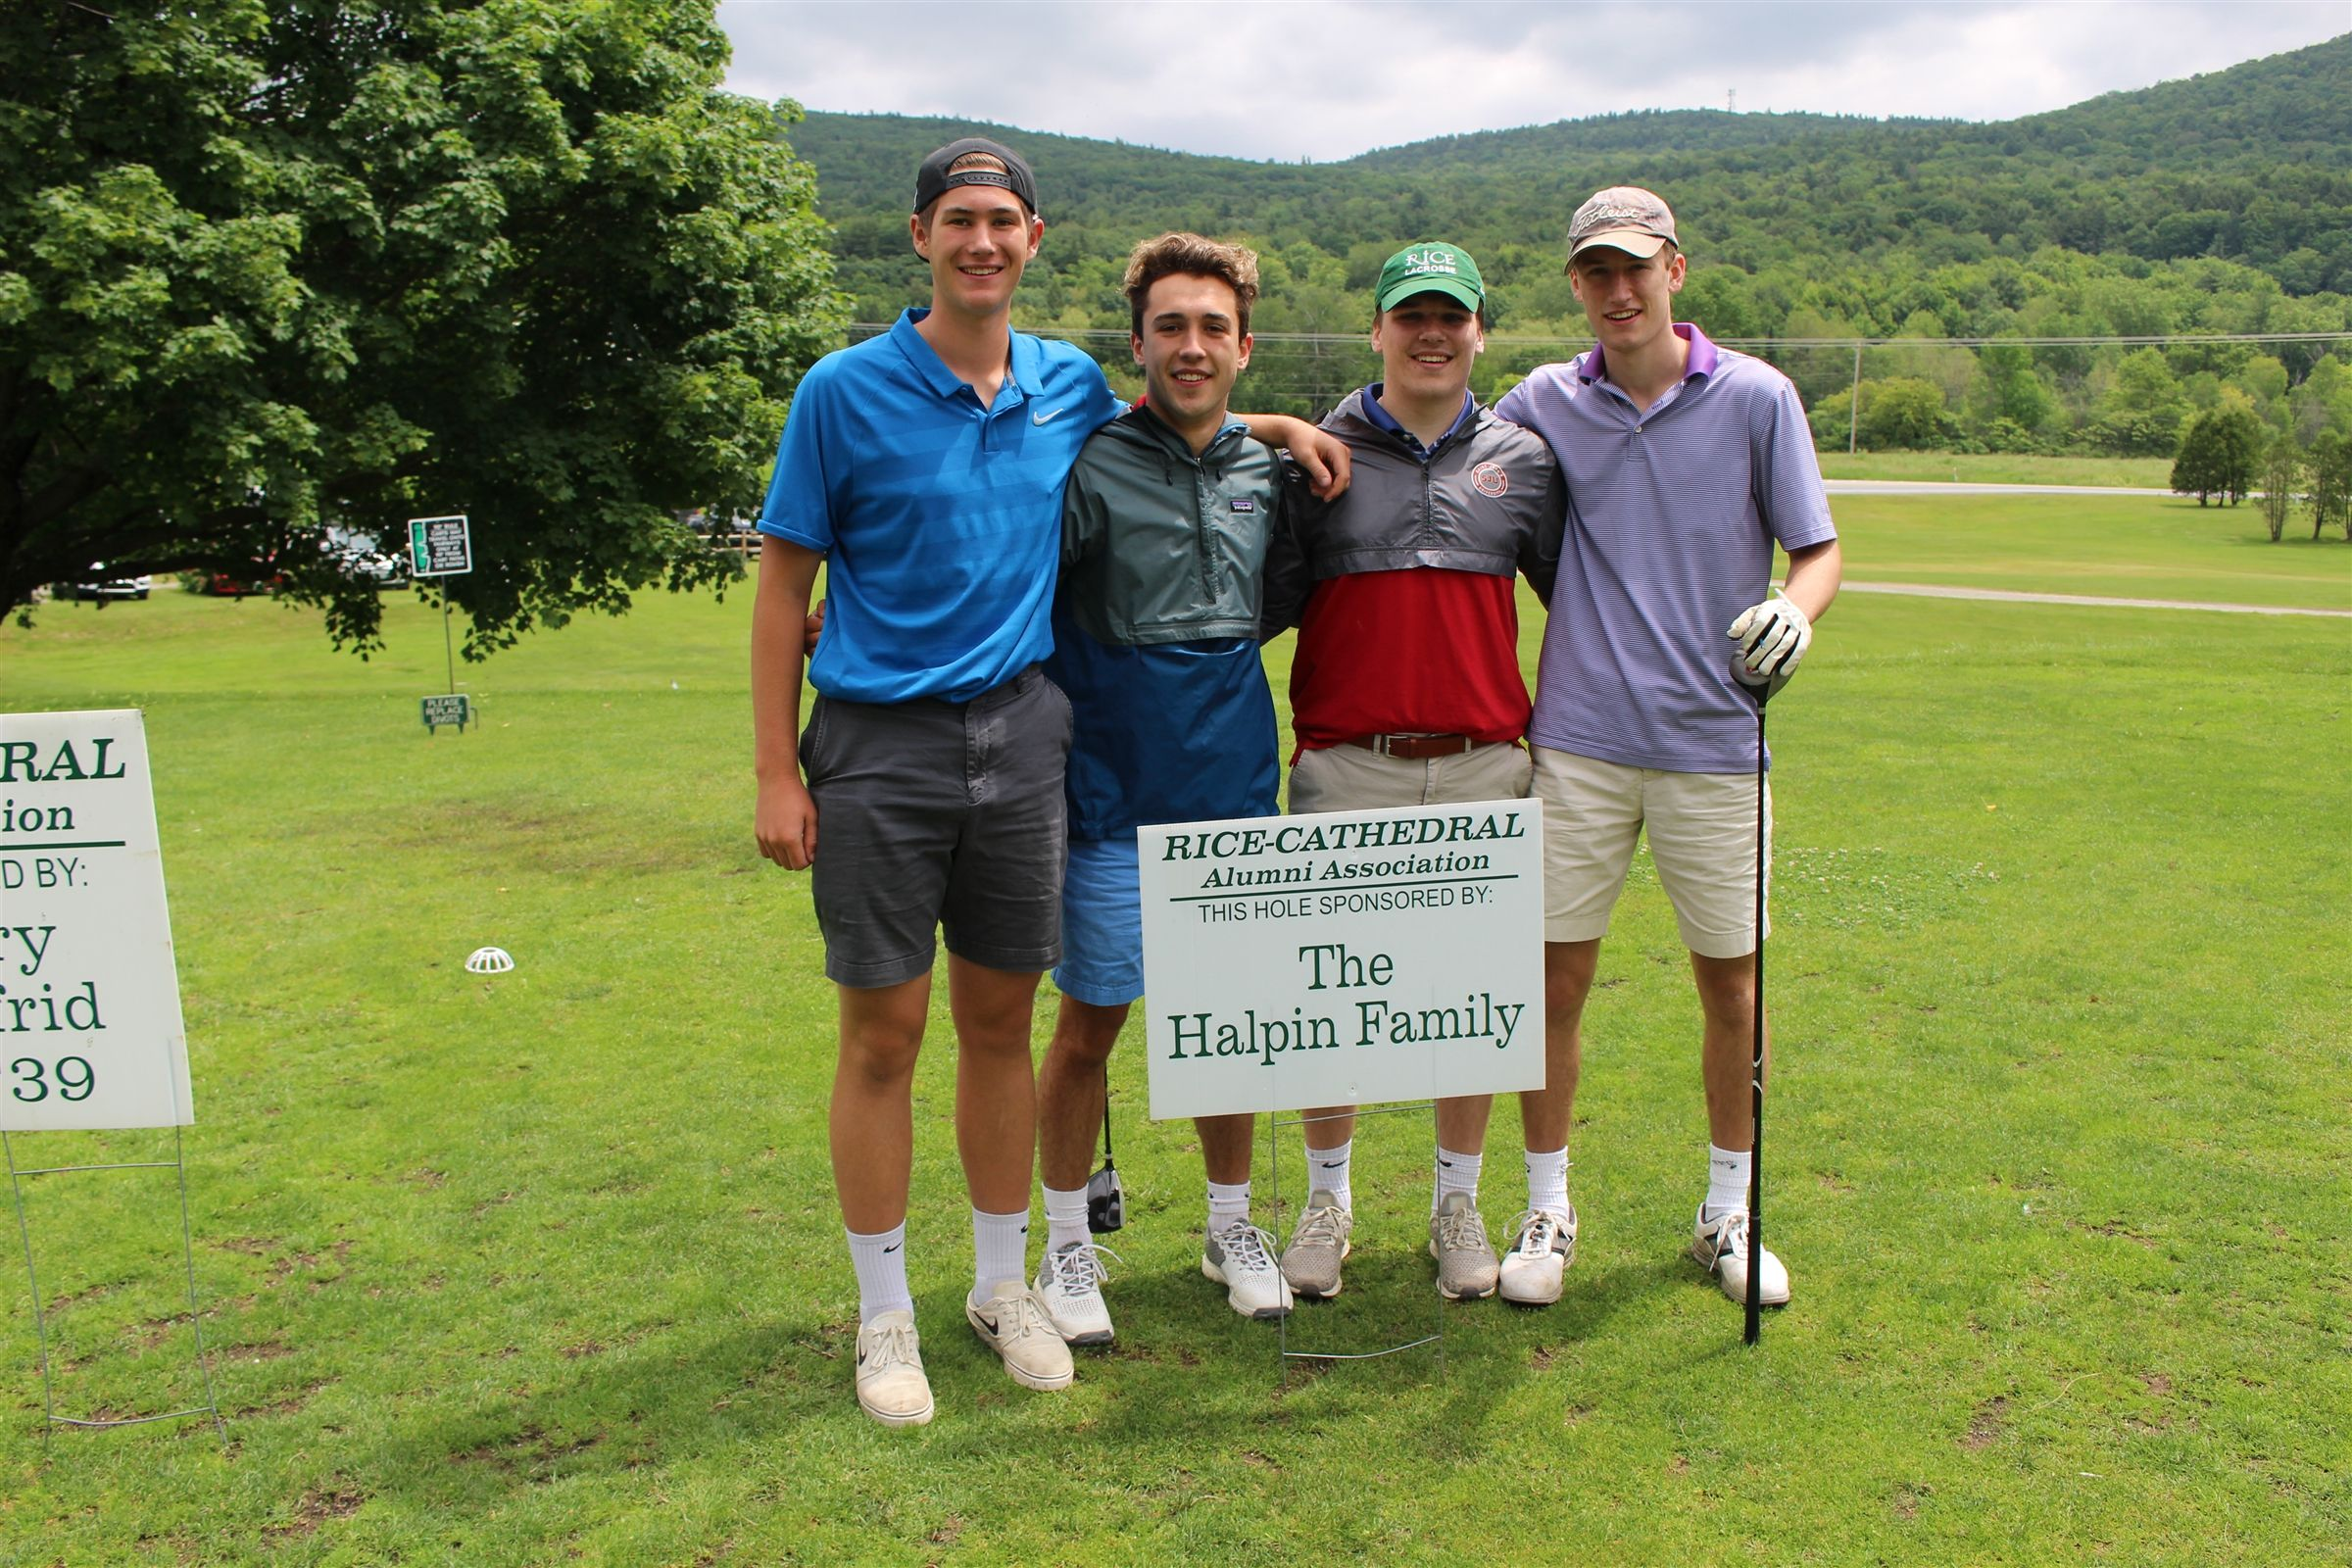 The Halpin family generously sponsored a team of our newest alumni, all graduates of the Class of 2019 - Christian Tarr, Elliot Limanek, Joey Viner and Andrew Snell.